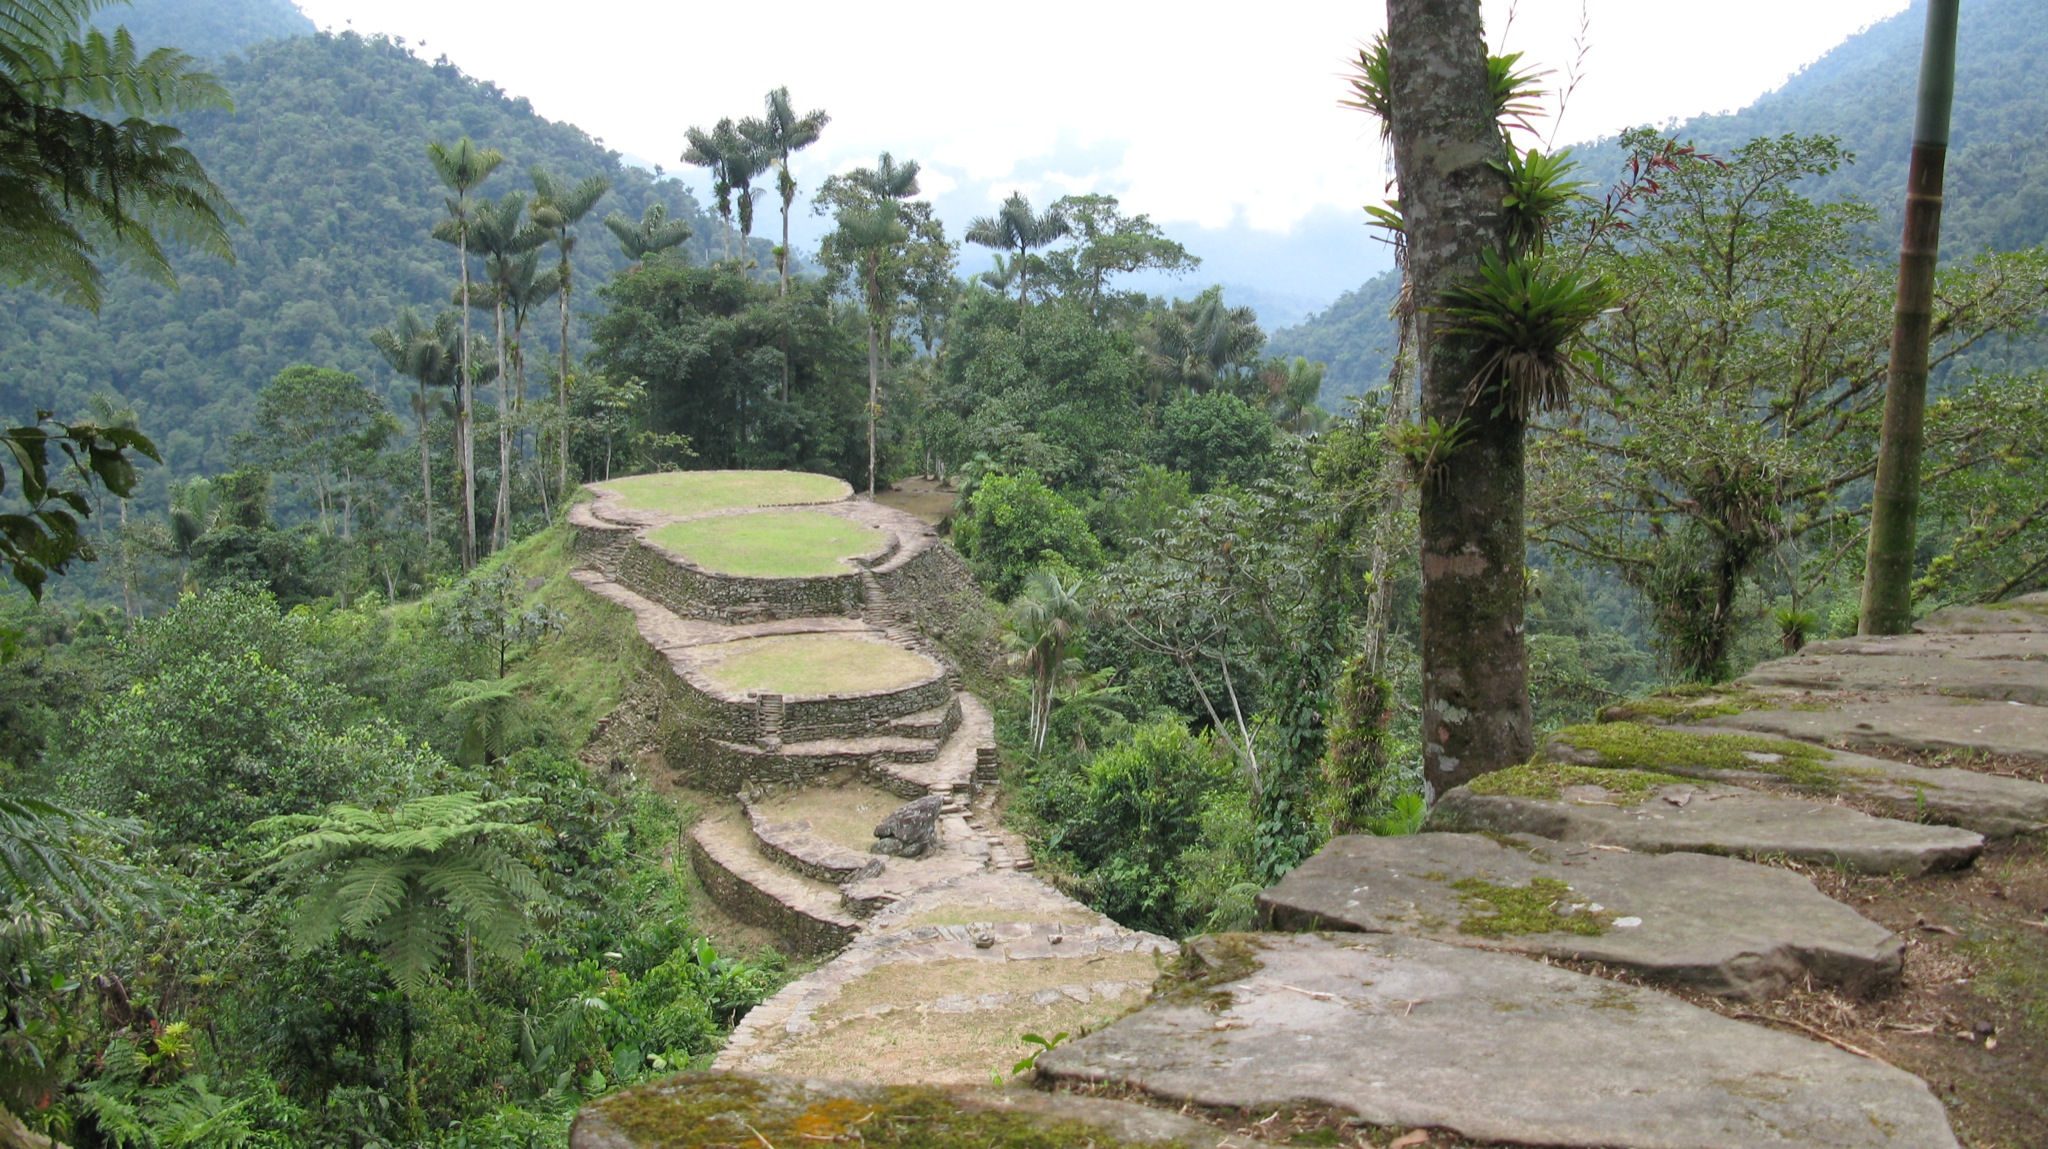 This is an image of the ruins from the Ciudad Perdida in Colombia.